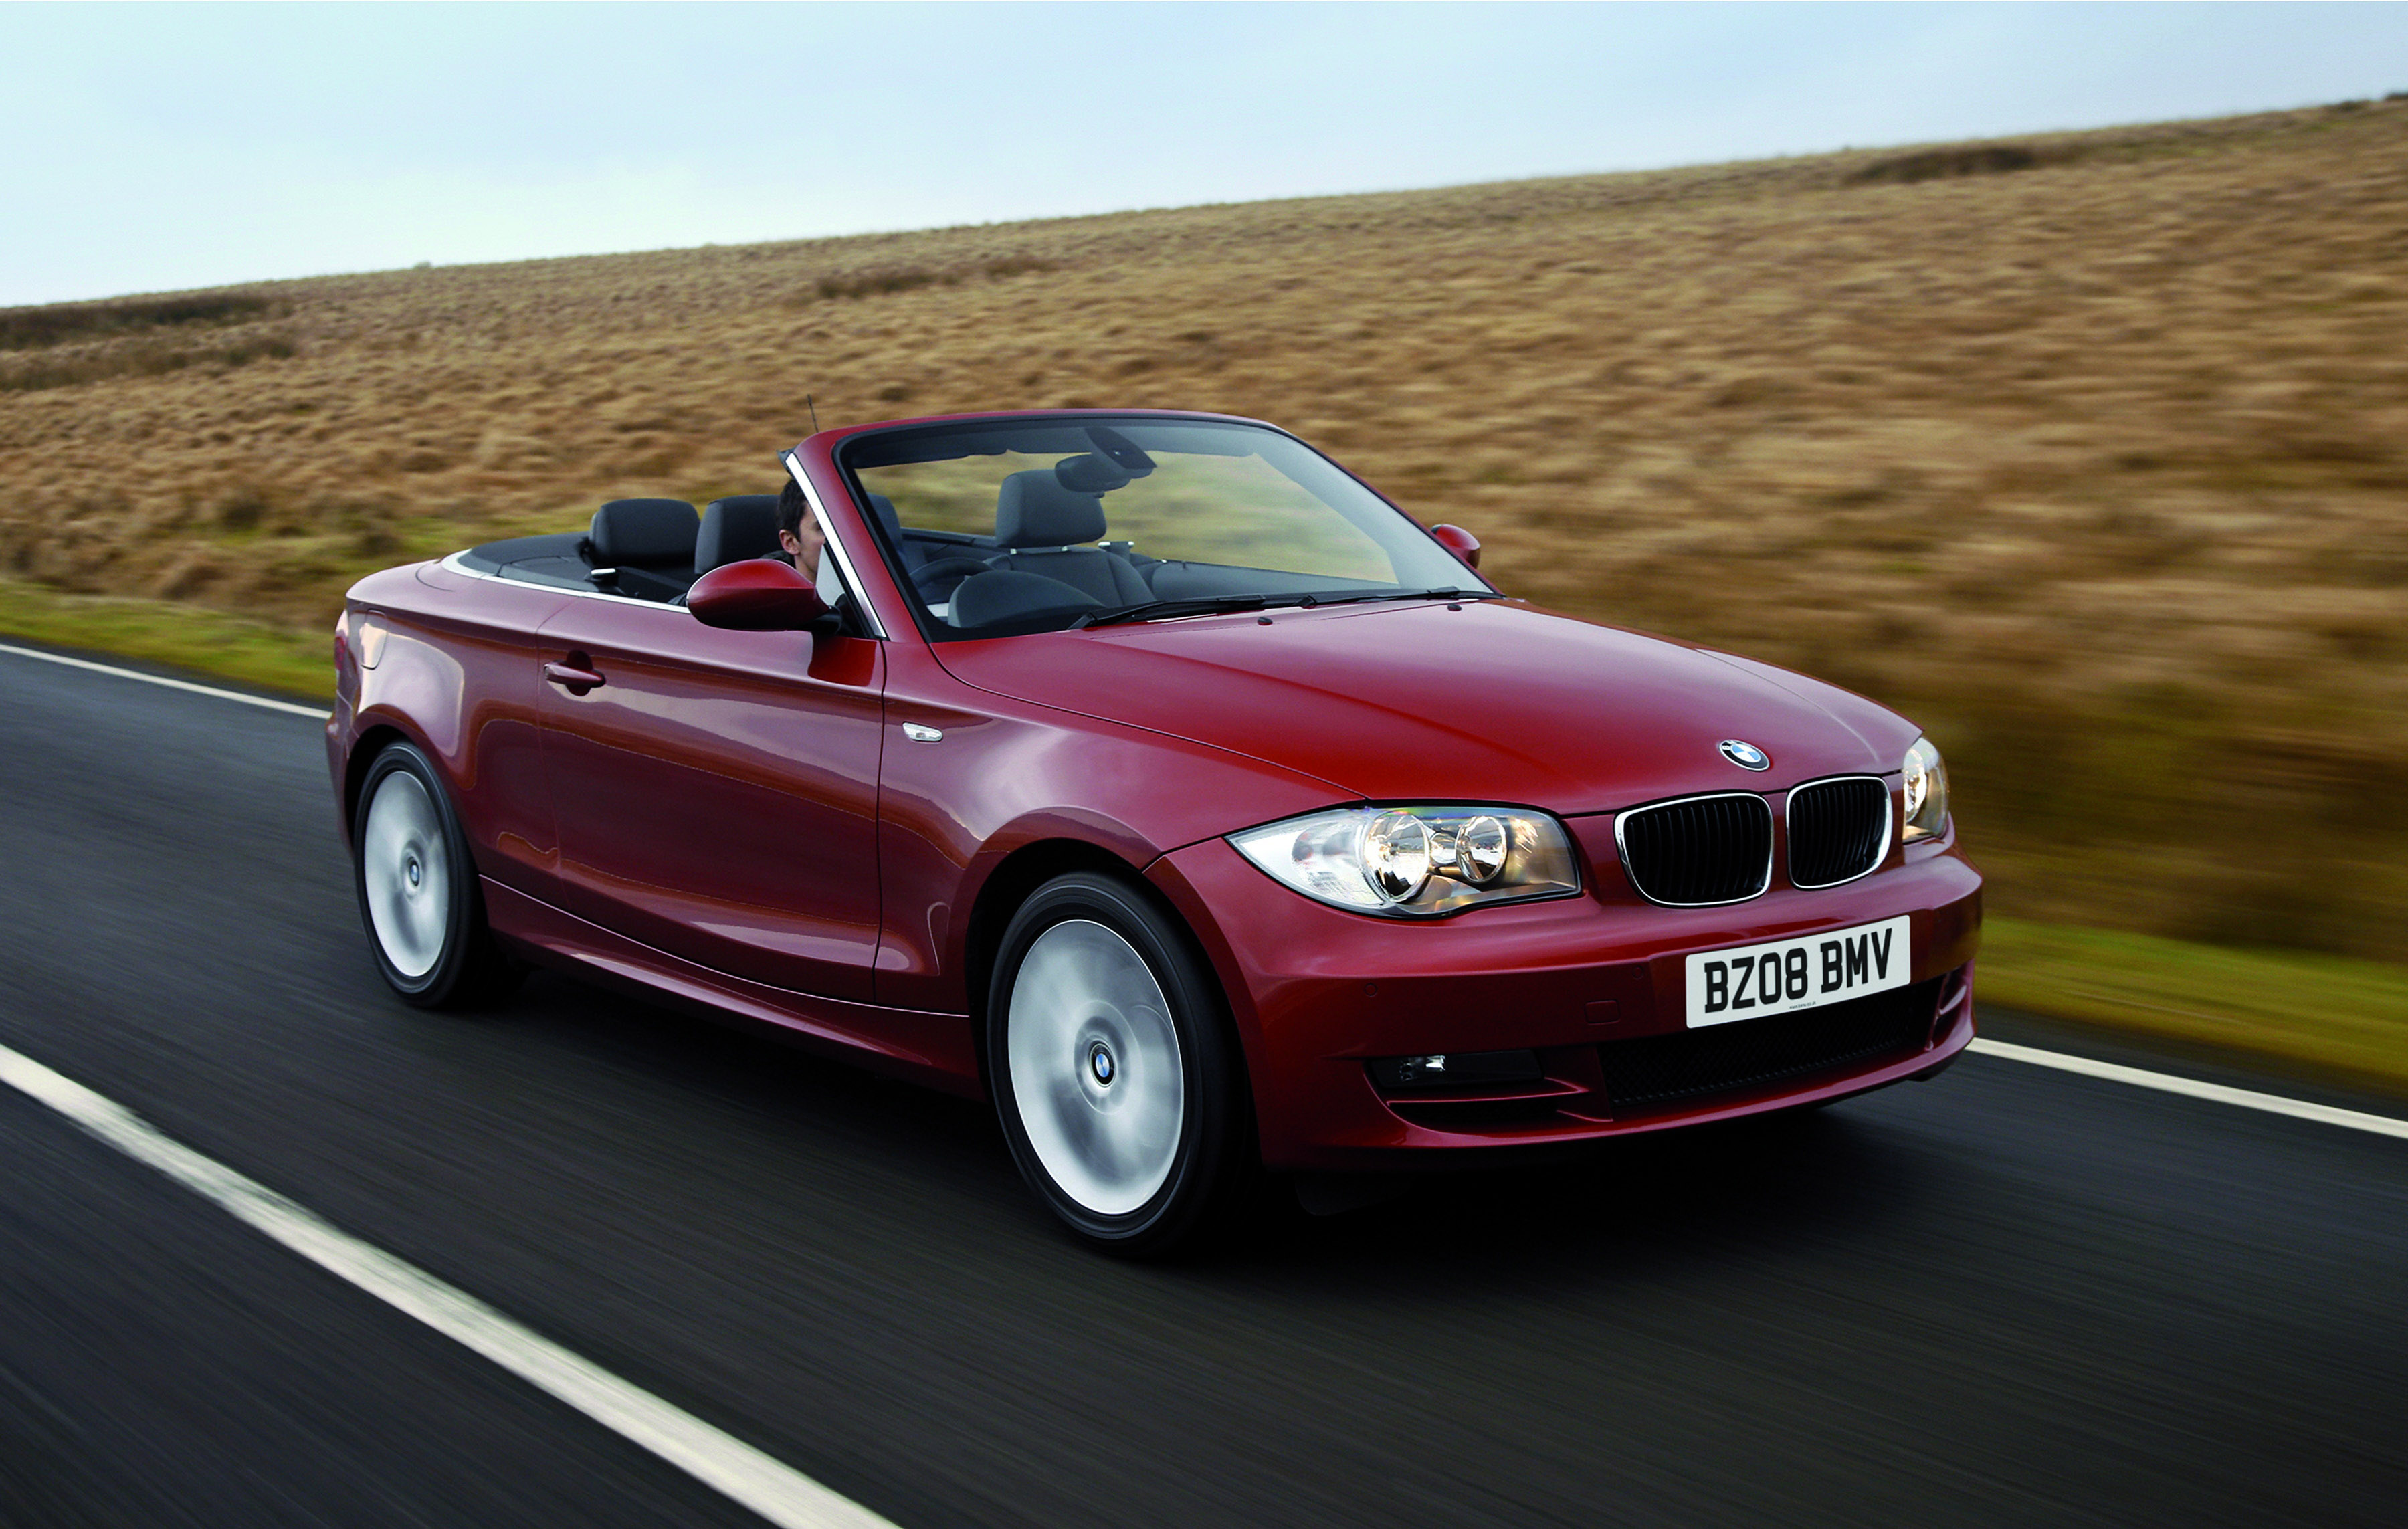 2008 BMW 1 Series Convertible - Picture 39031